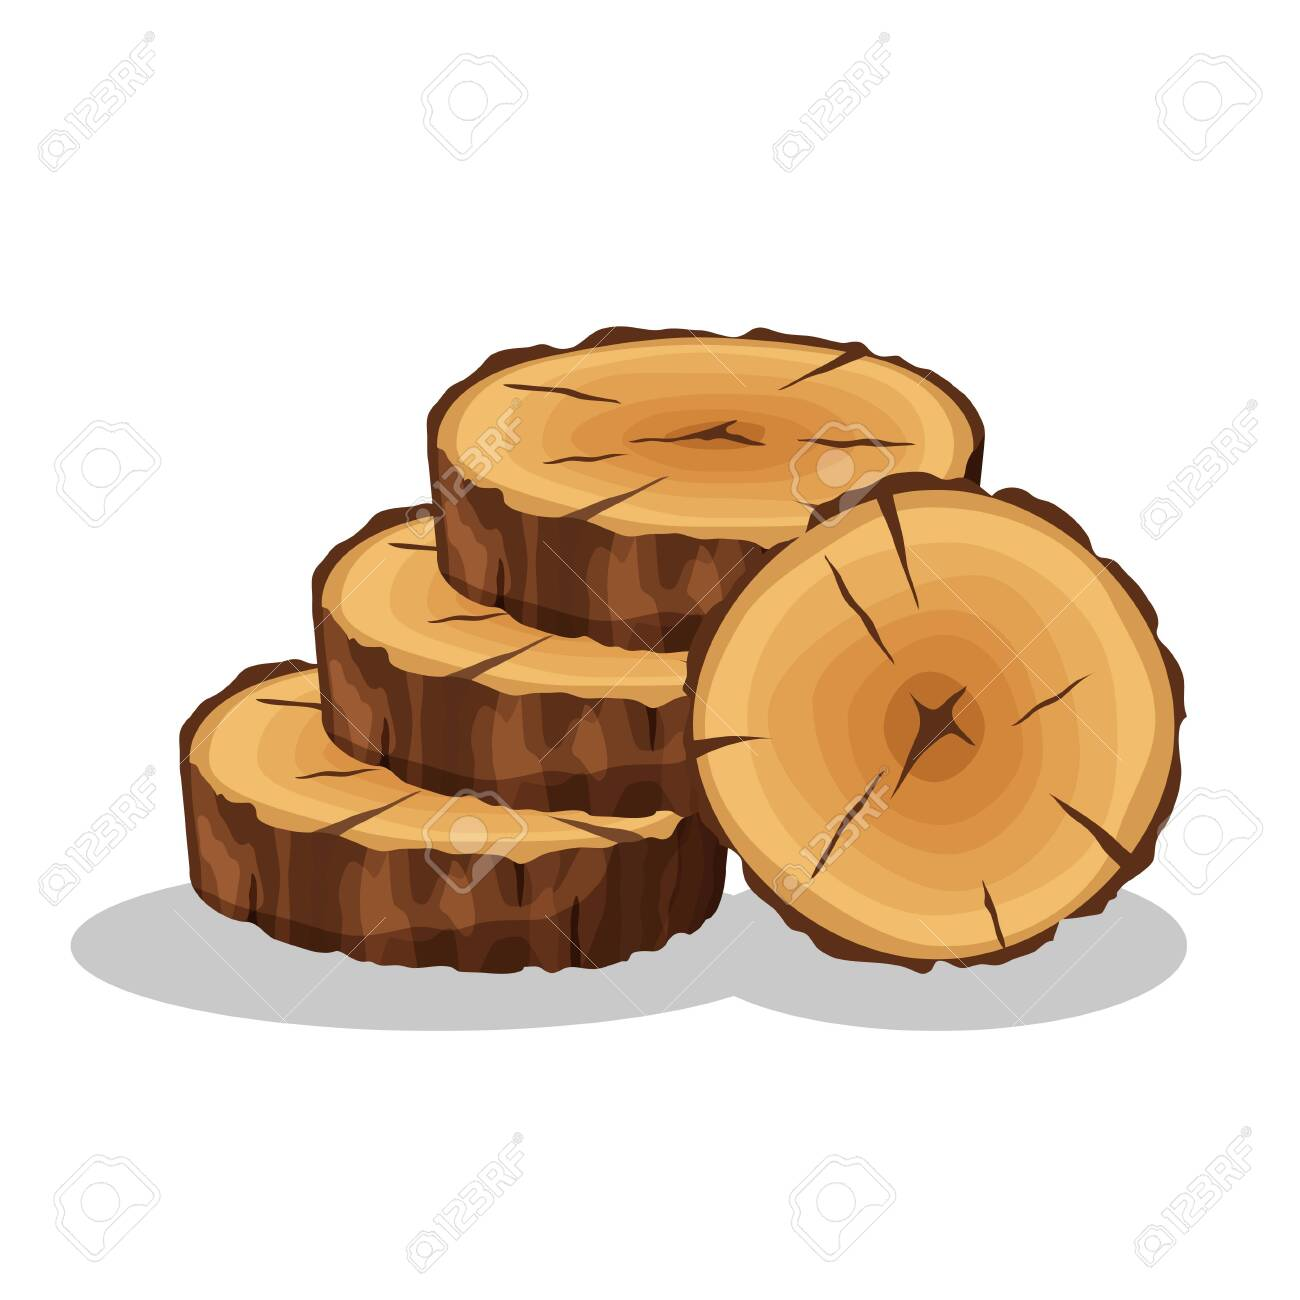 Cartoon Pile Of Tree Rings Isolated On White Background Wooden Royalty Free Cliparts Vectors And Stock Illustration Image 123983652 Find & download free graphic resources for tree rings. cartoon pile of tree rings isolated on white background wooden